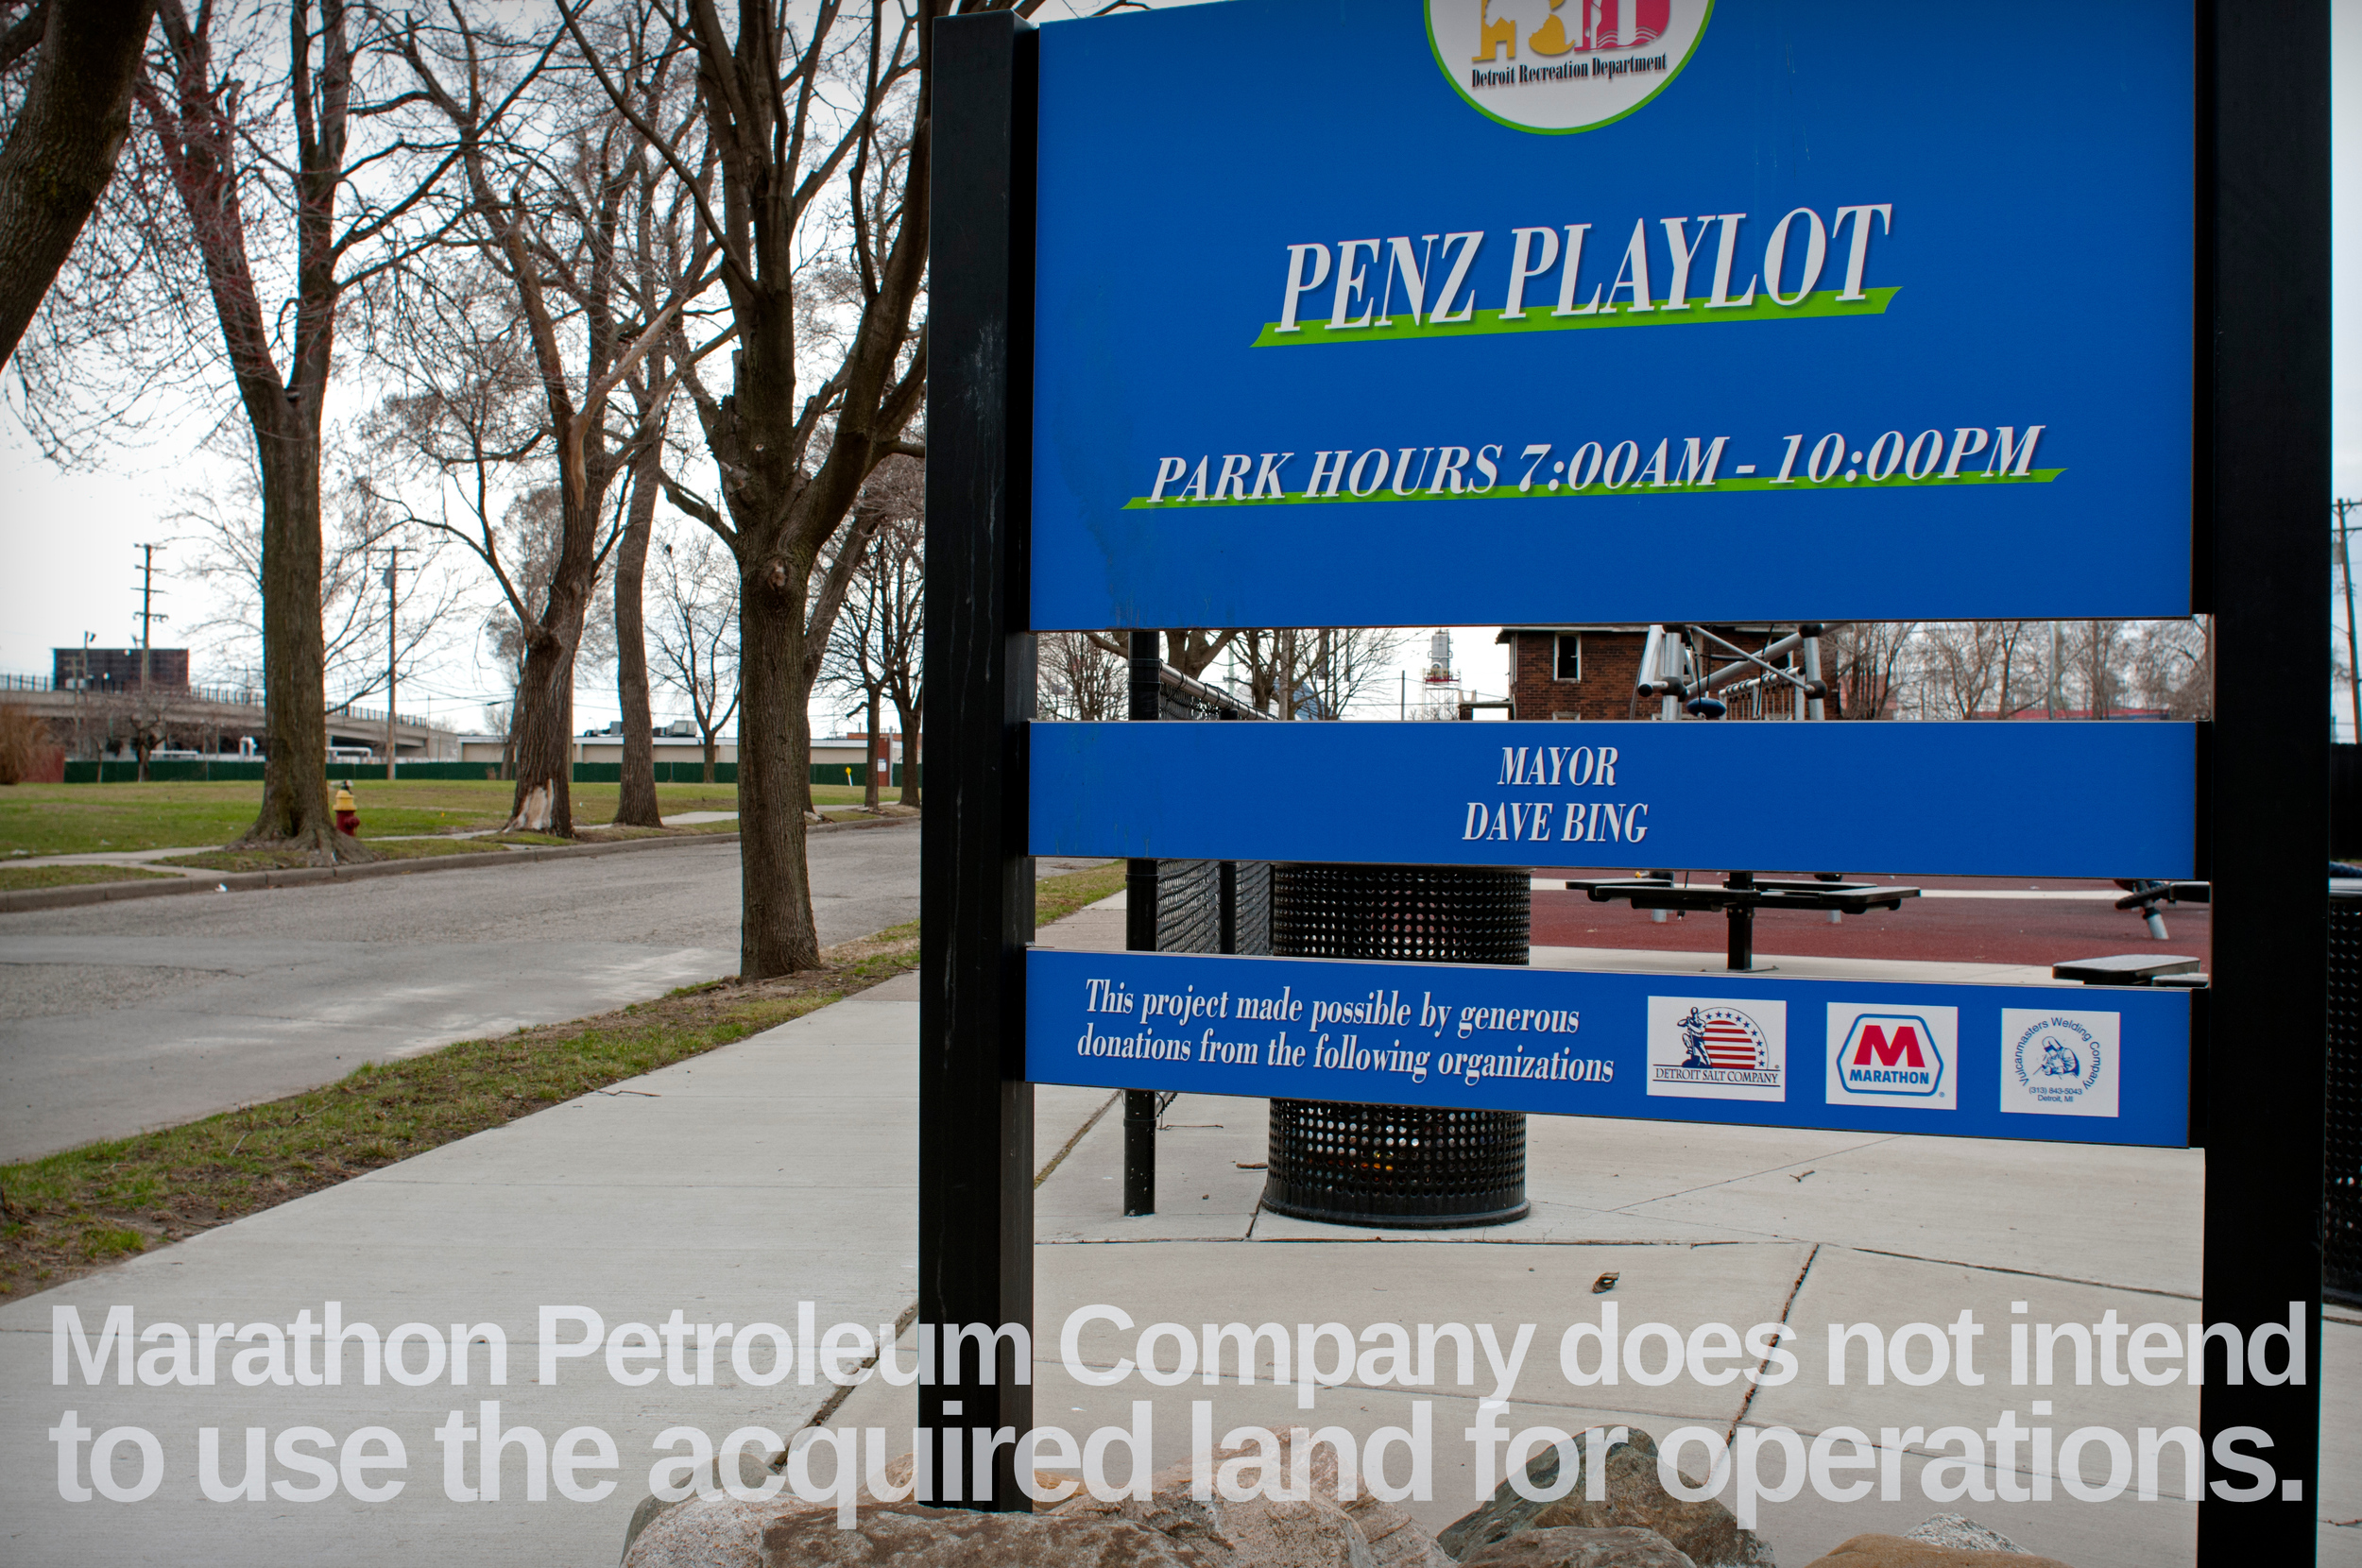 23-Playground+Sign-operations-3578945109-O.jpg